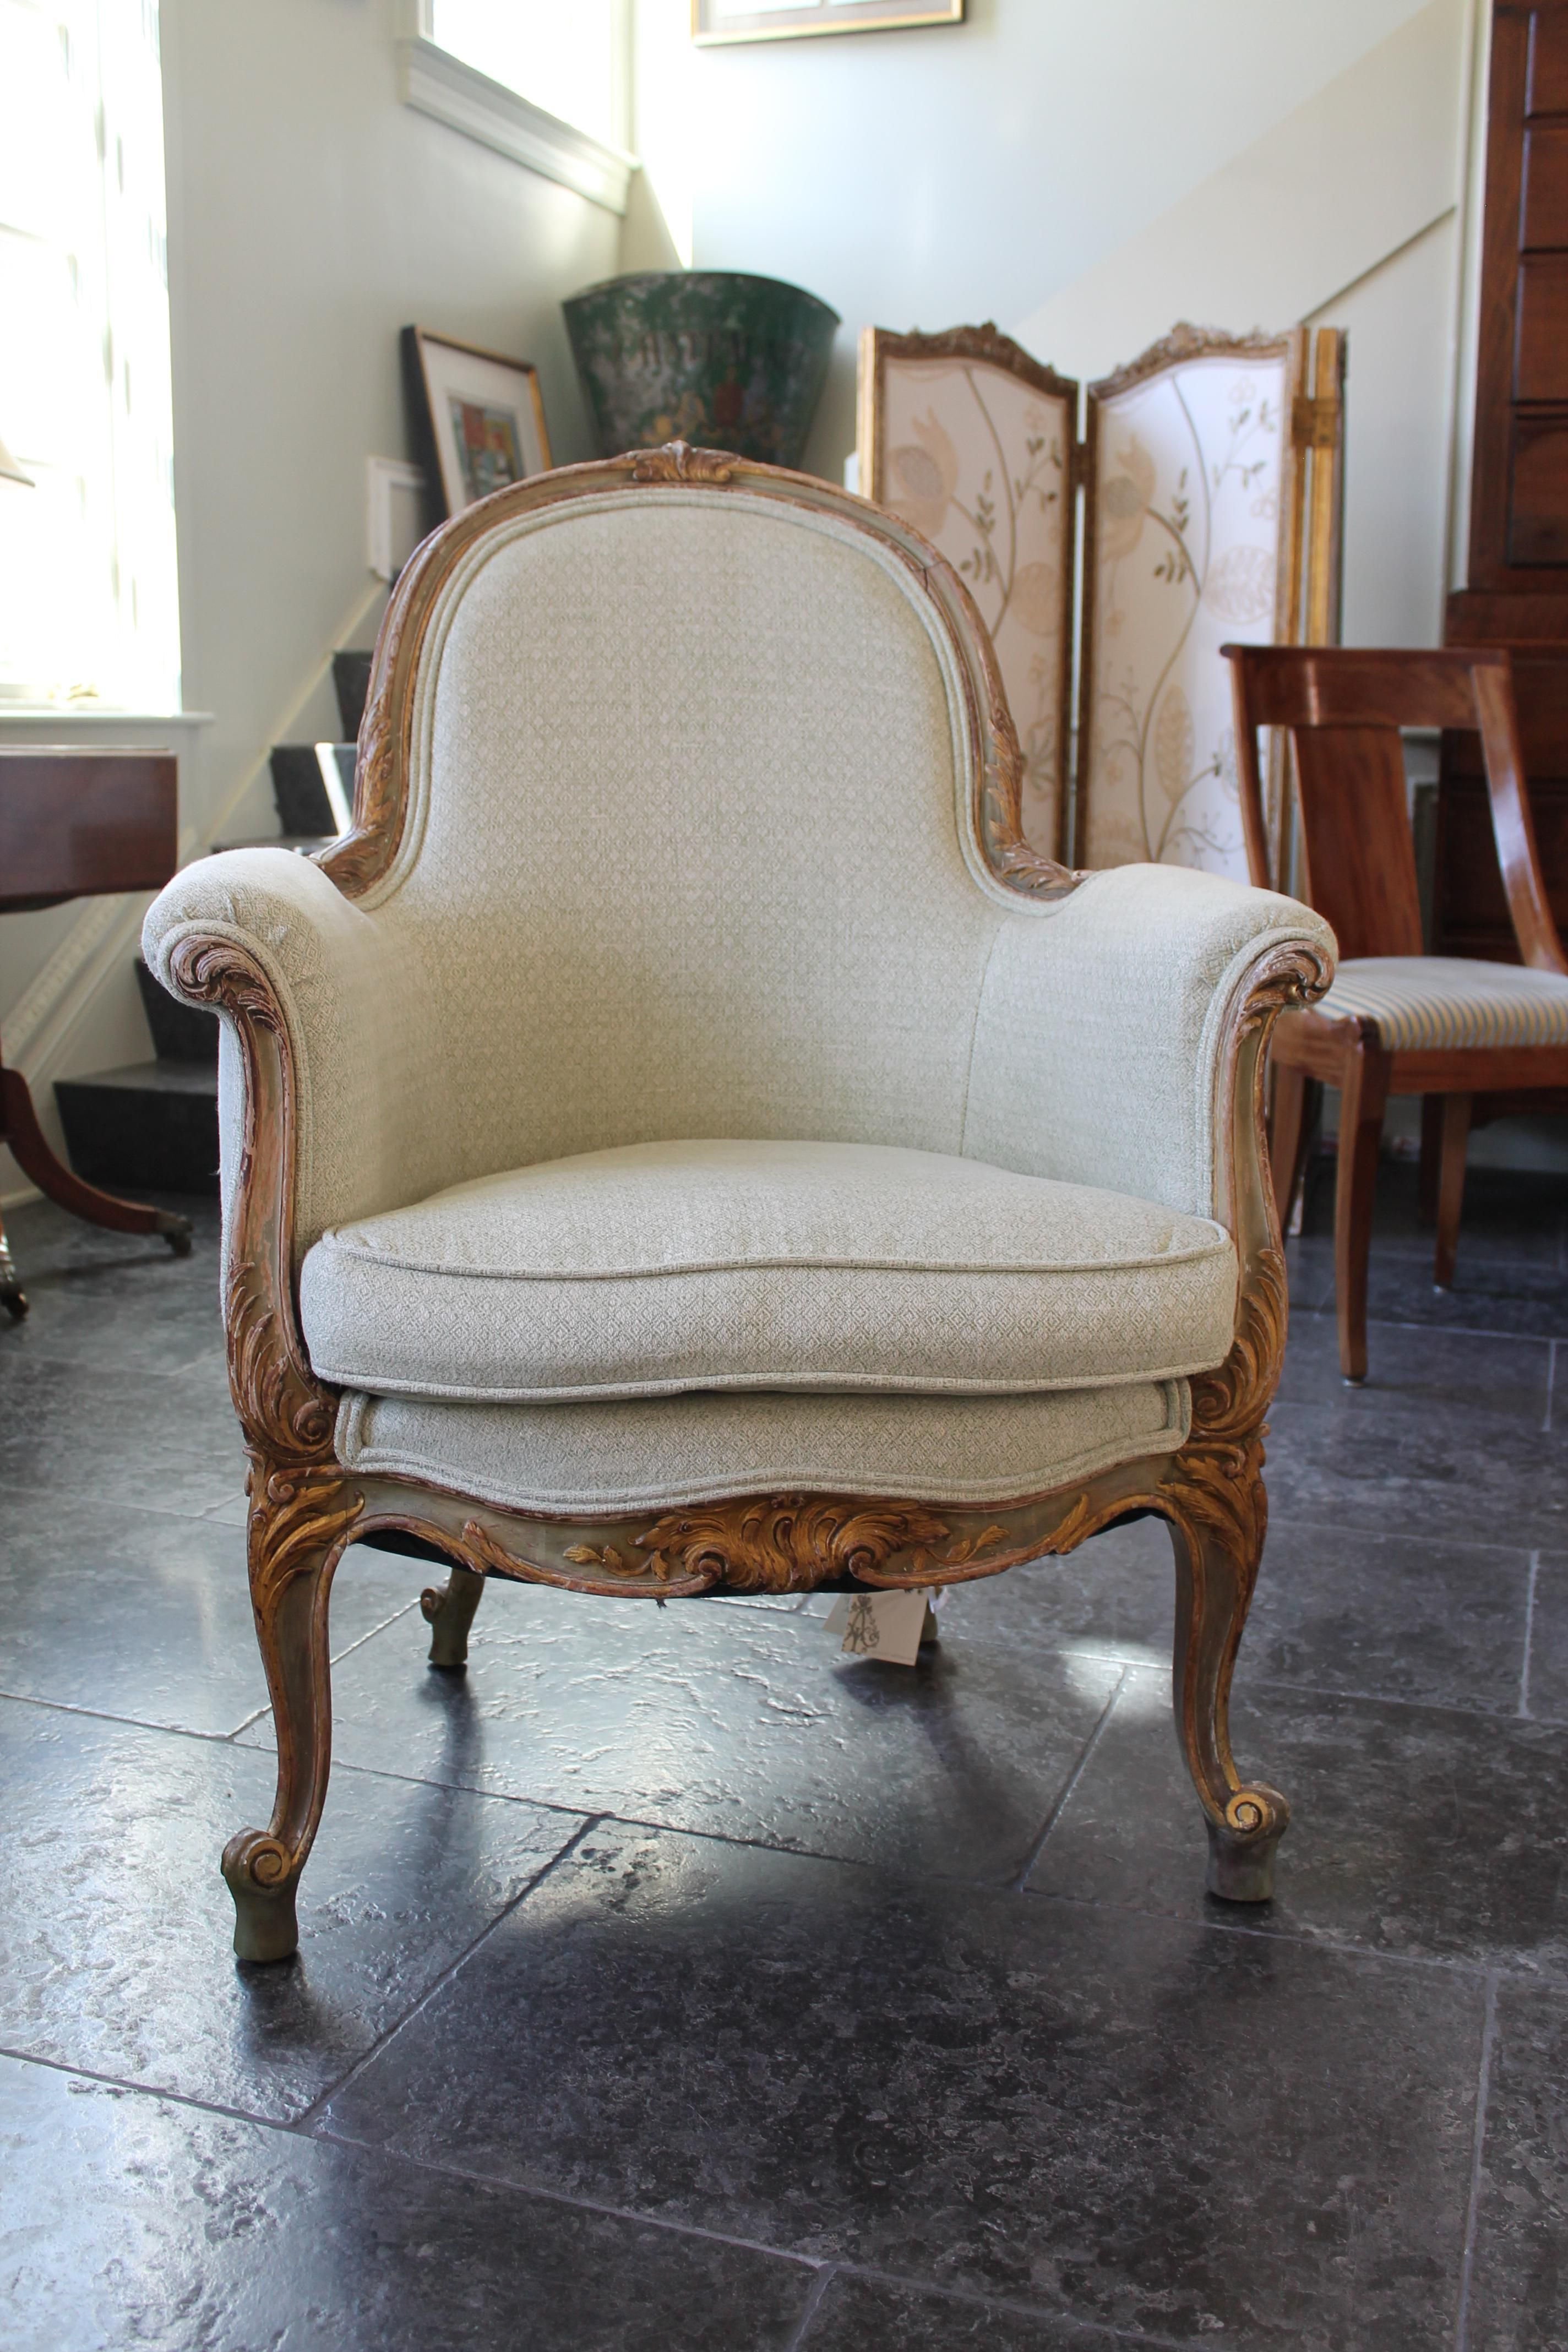 Newly Reupholstered Arm Chair With Curved Arms Legs Double